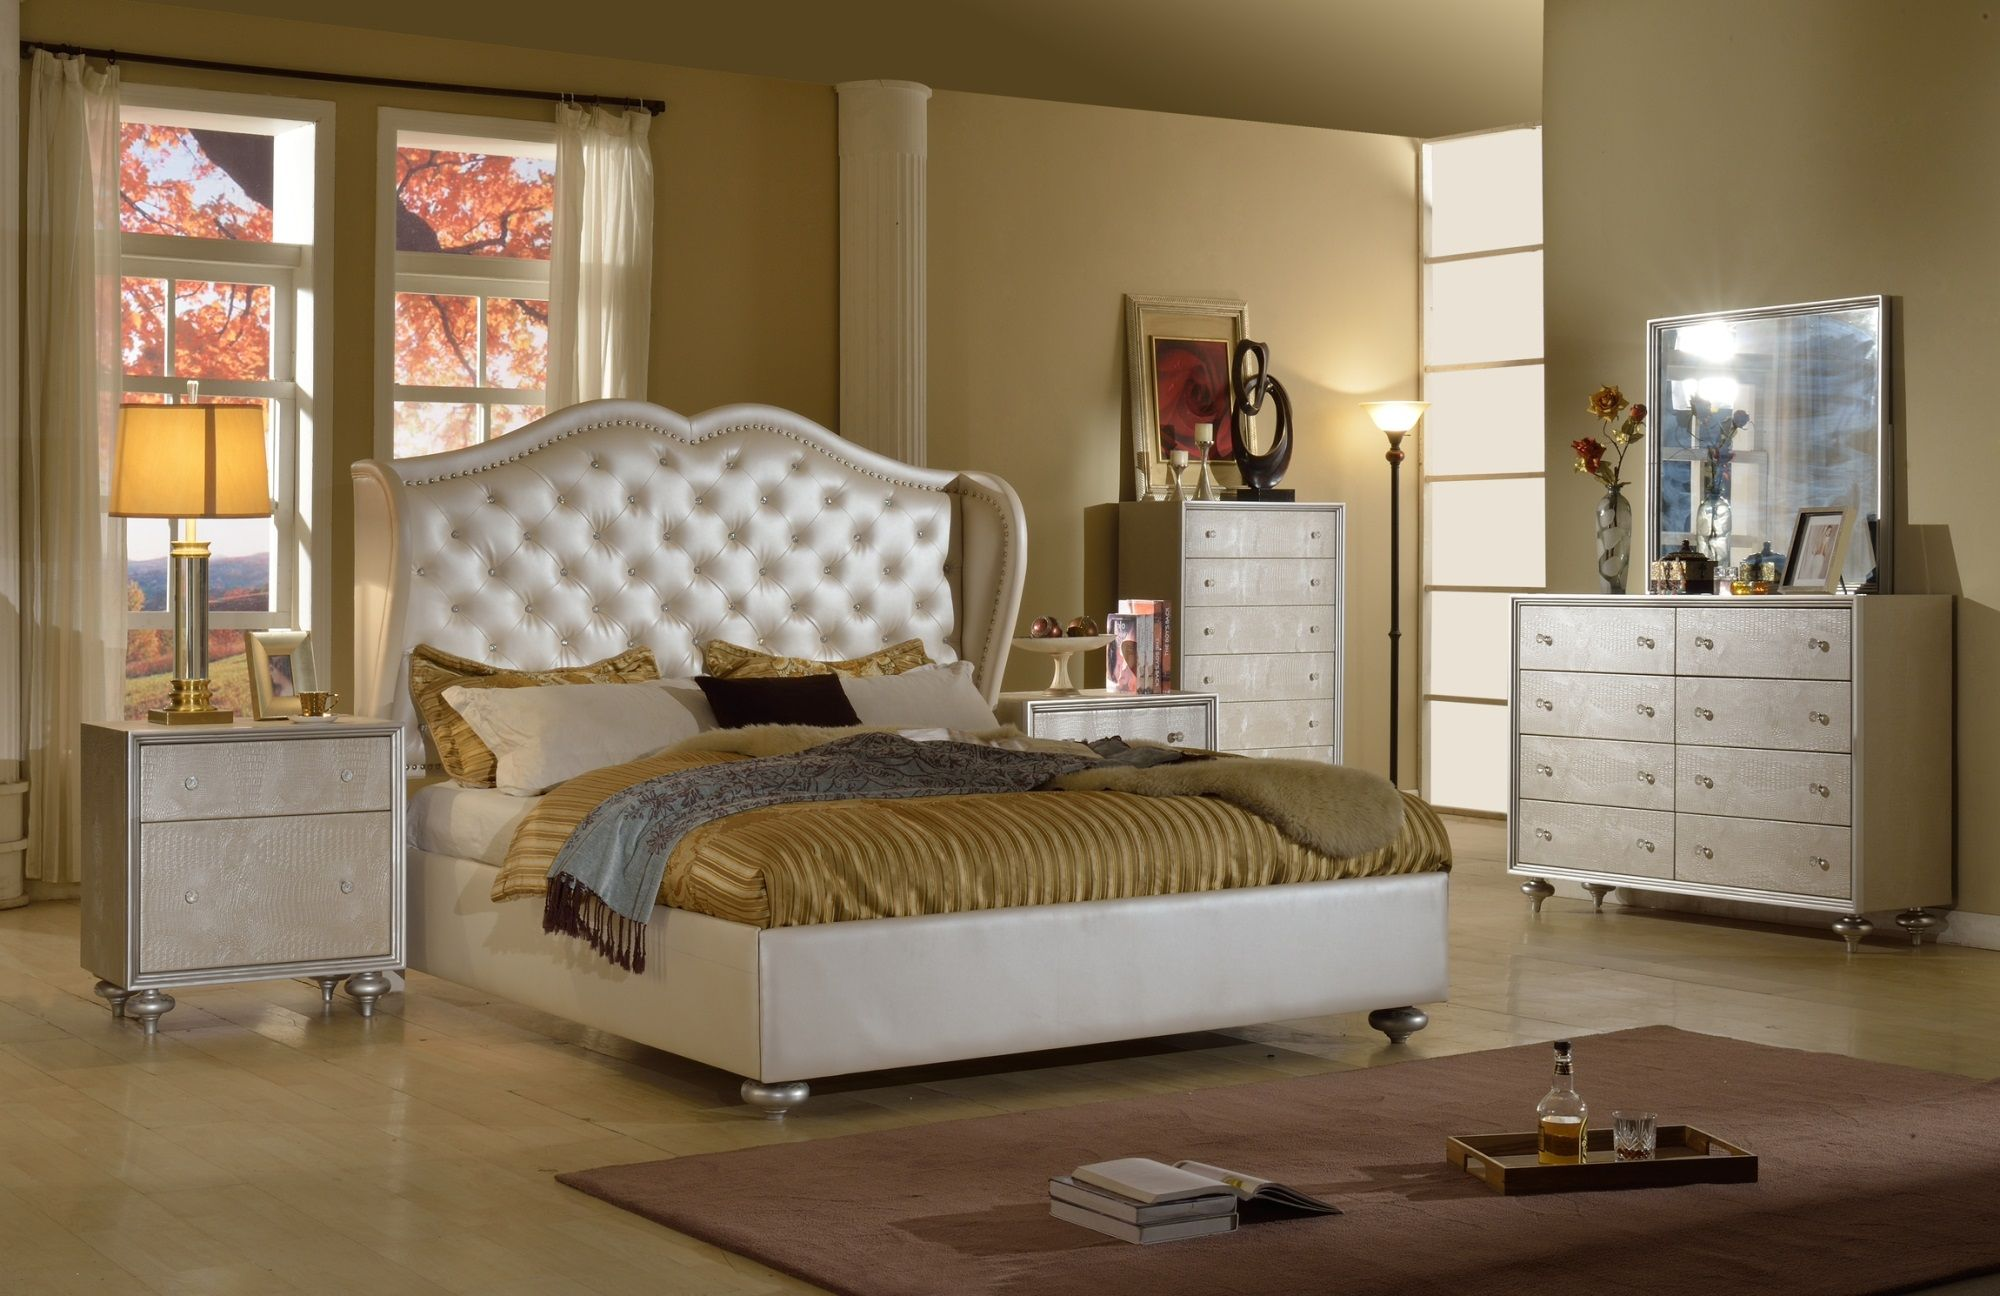 CustomerFeedback What do you think about this Pearl Bedroom Set